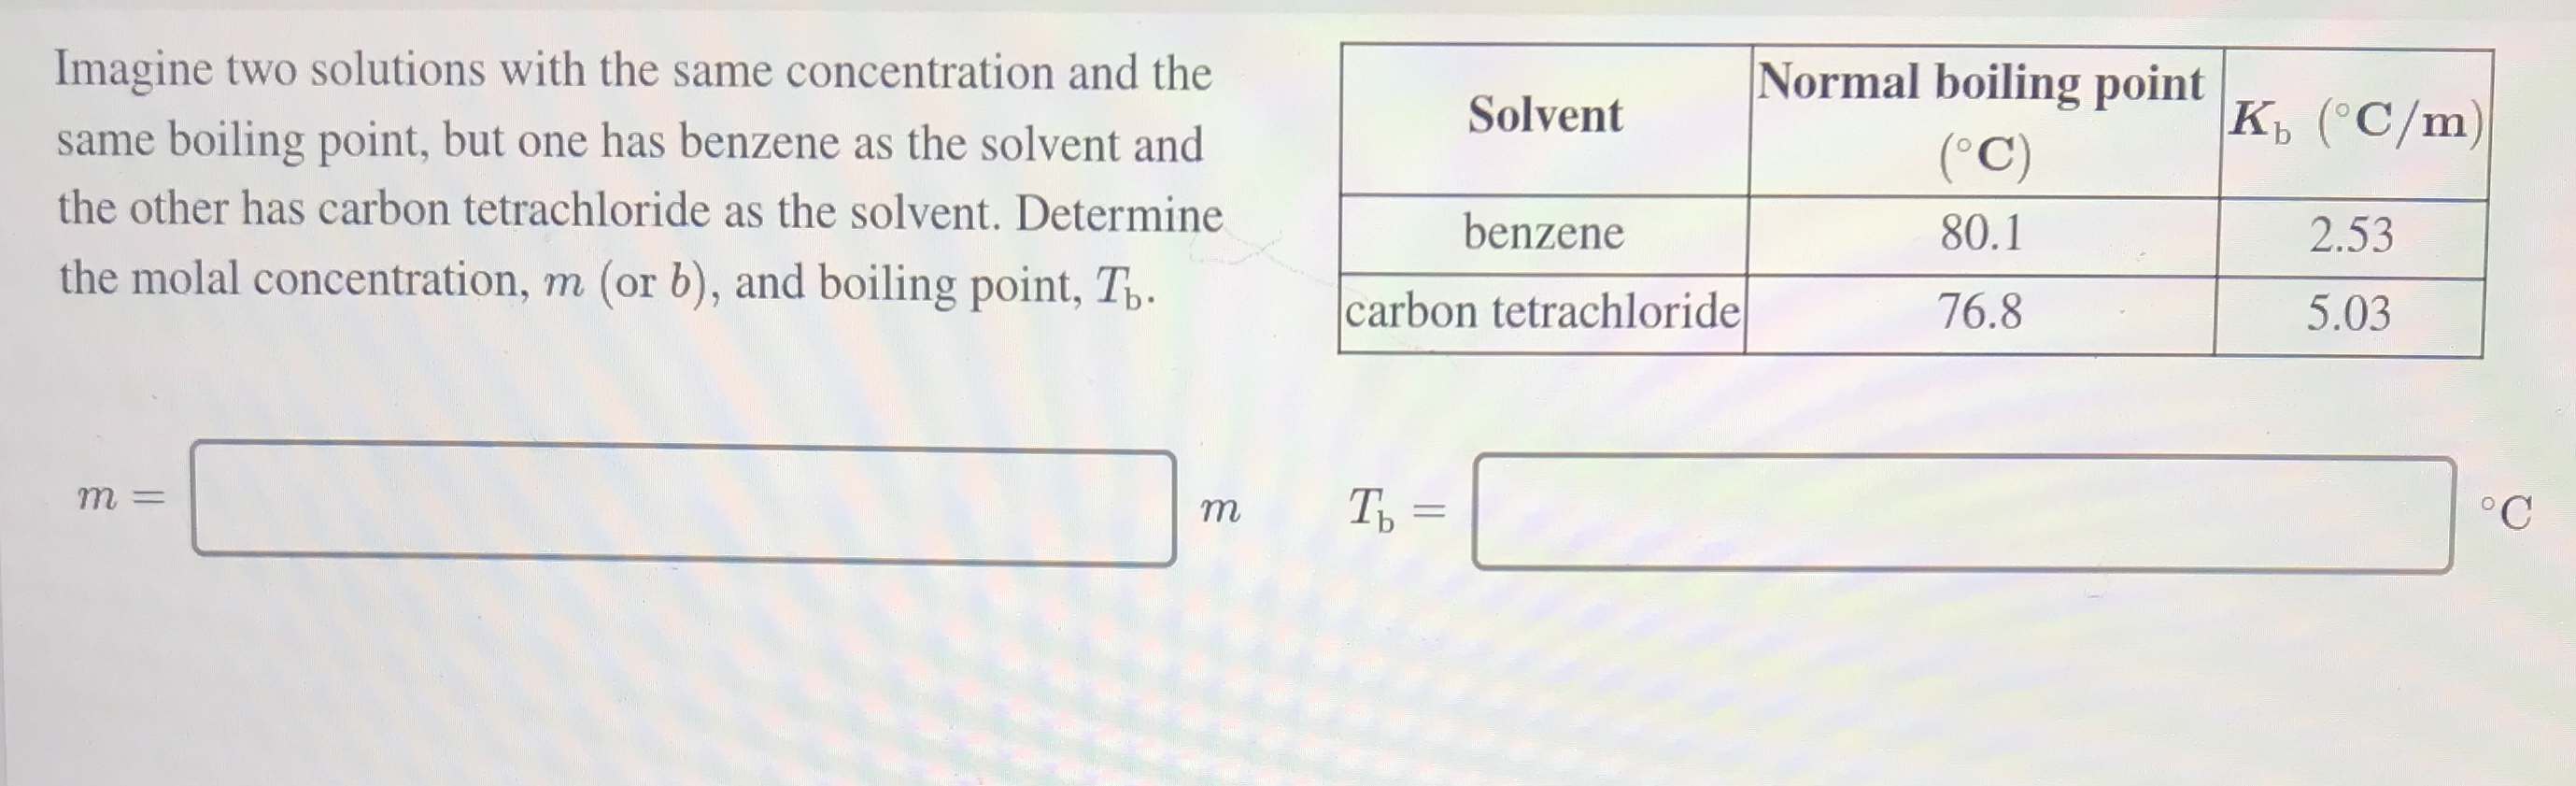 Imagine two solutions with the same concentration and the Normal boiling point same boiling point, but one has benzene as the solvent and Solvent к, (С/m) (°C) the other has carbon tetrachloride as the solvent. Determine benzene 80.1 2.53 the molal concentration, m (or b), and boiling point, T,. carbon tetrachloride 76.8 5.03 т Ть - ||